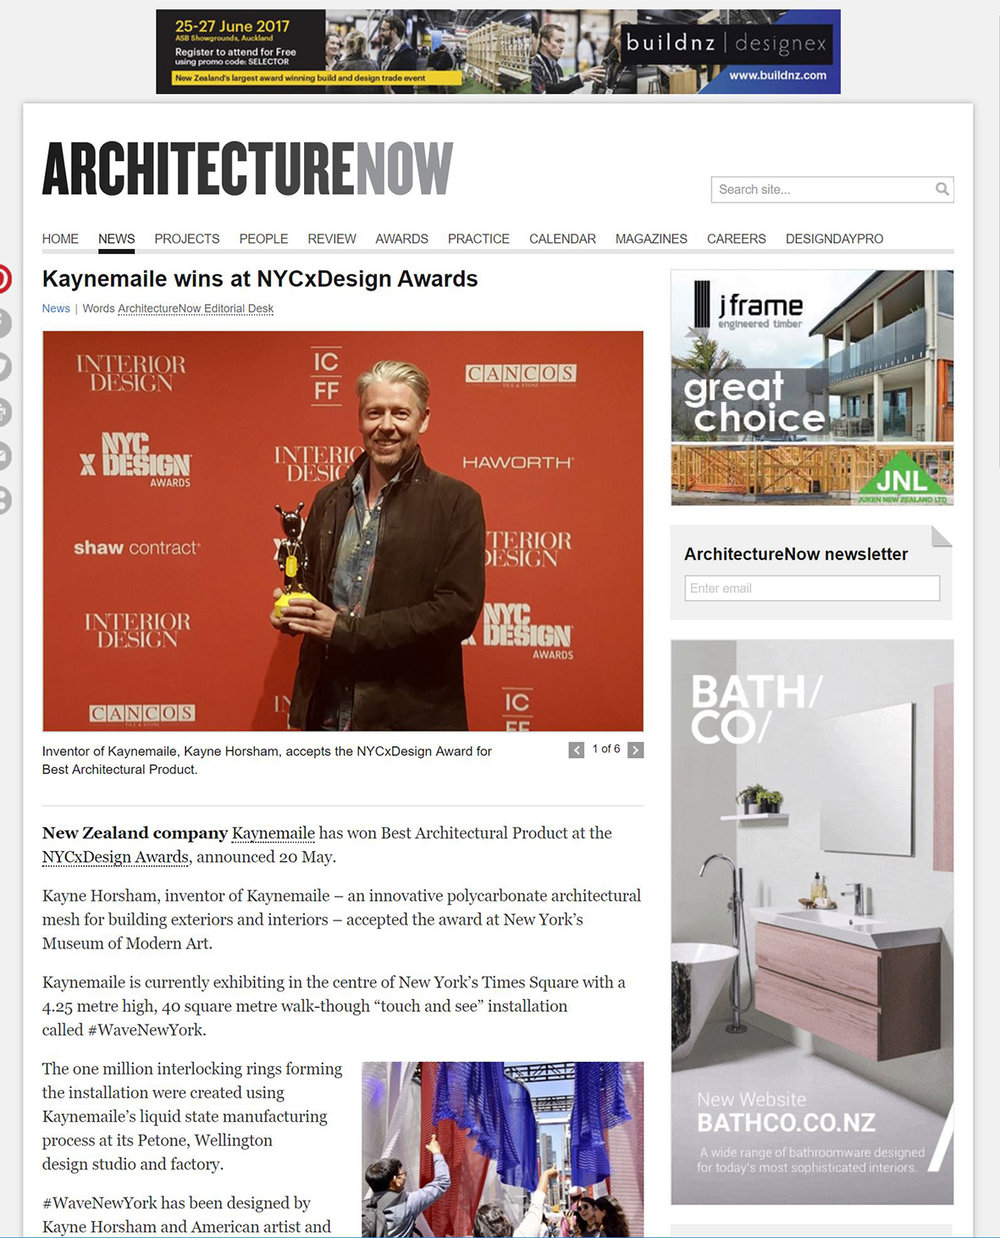 Kaynemaile wins at NYCxDesign Awards